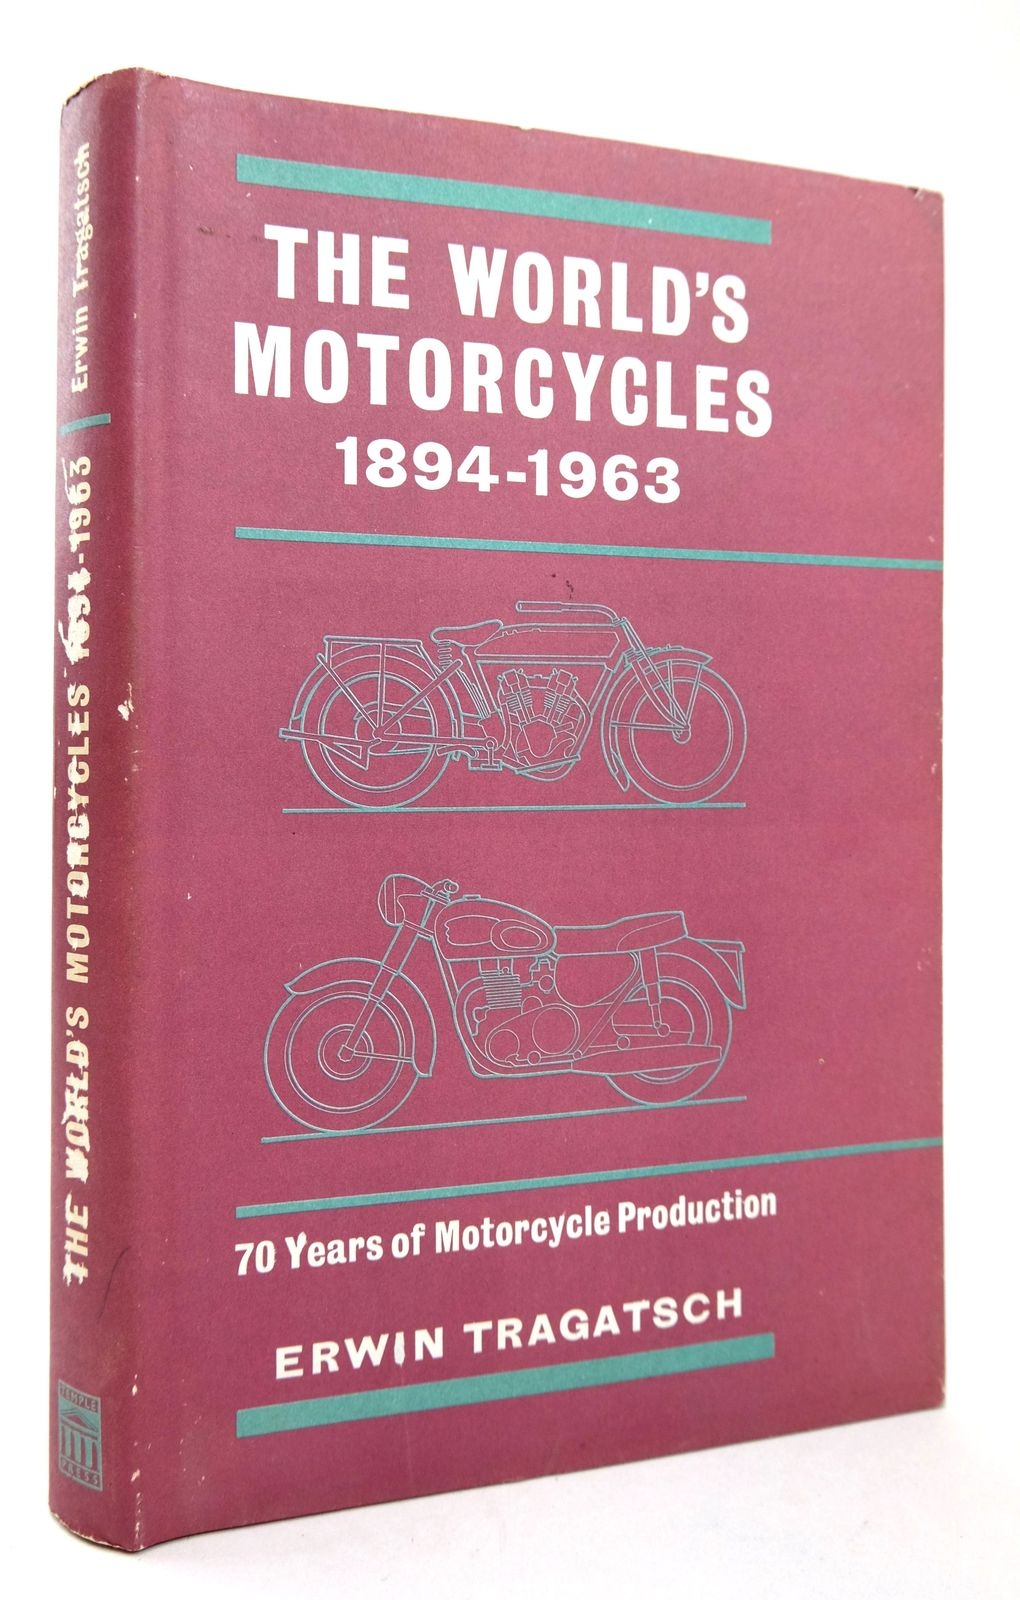 Photo of THE WORLD'S MOTORCYCLES 1894-1963 written by Tragatsch, Erwin published by Temple Press Books (STOCK CODE: 1818726)  for sale by Stella & Rose's Books